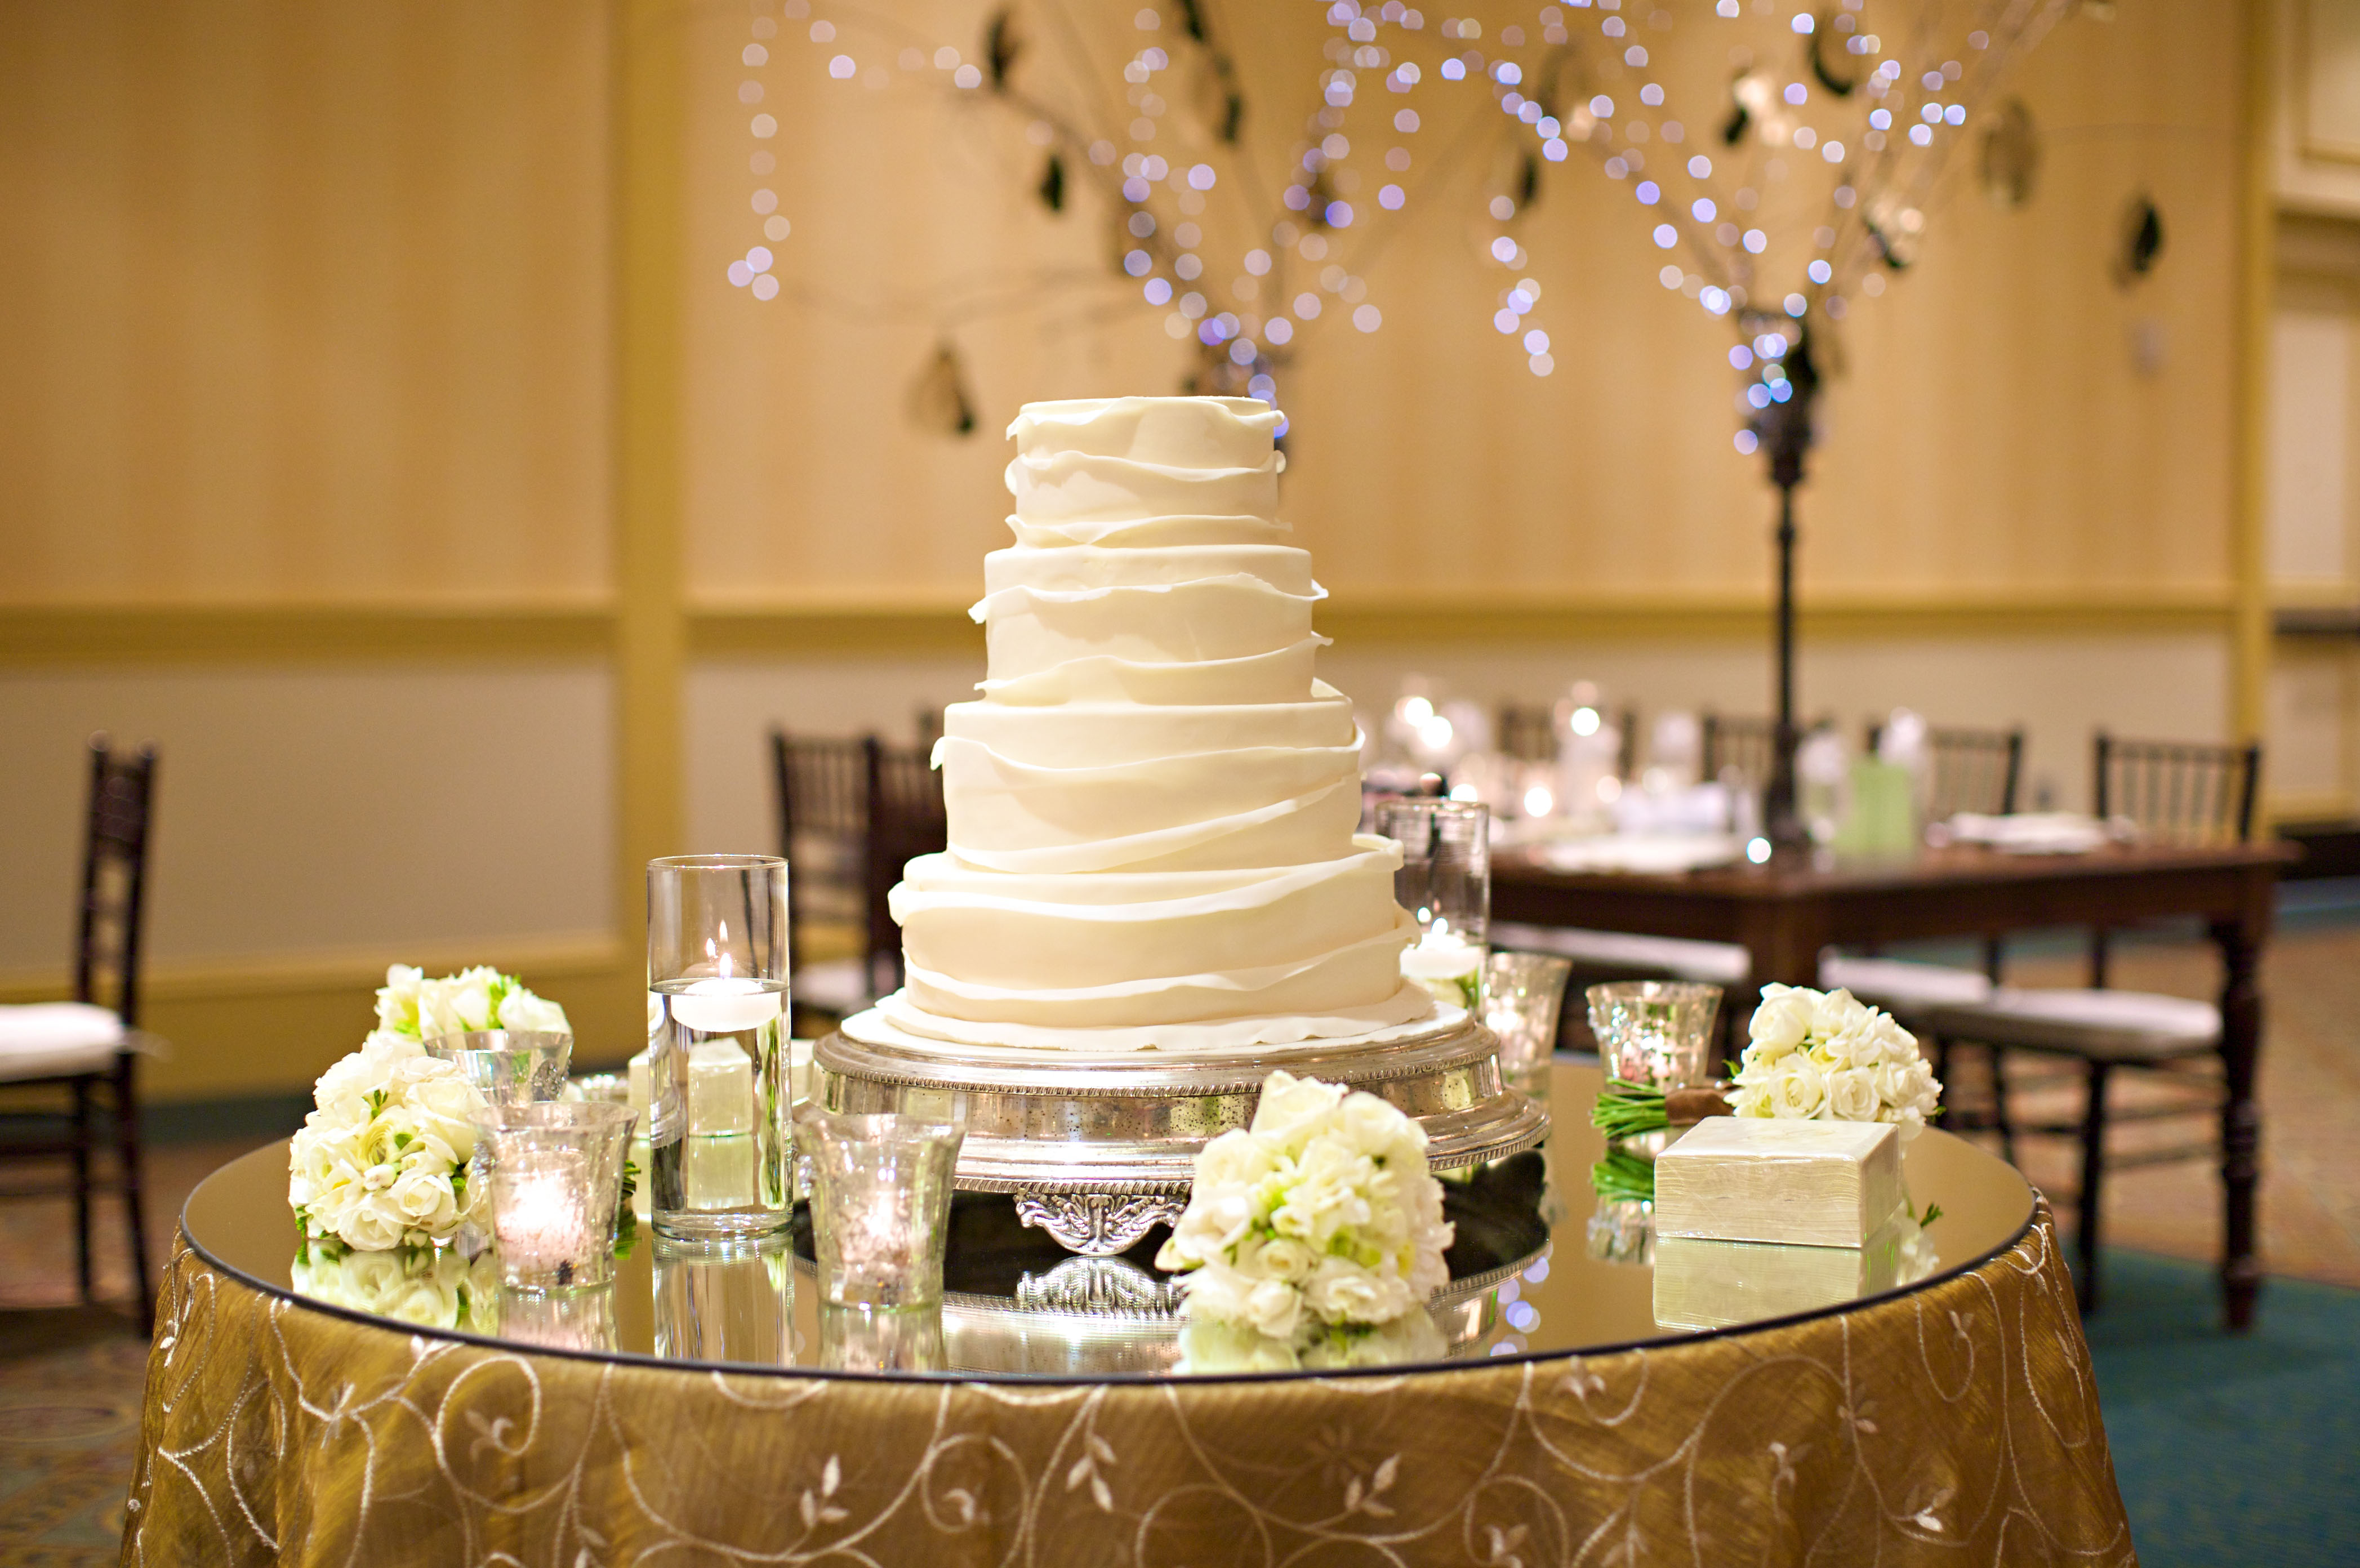 Best Wedding Cakes 2012 Viewing Gallery